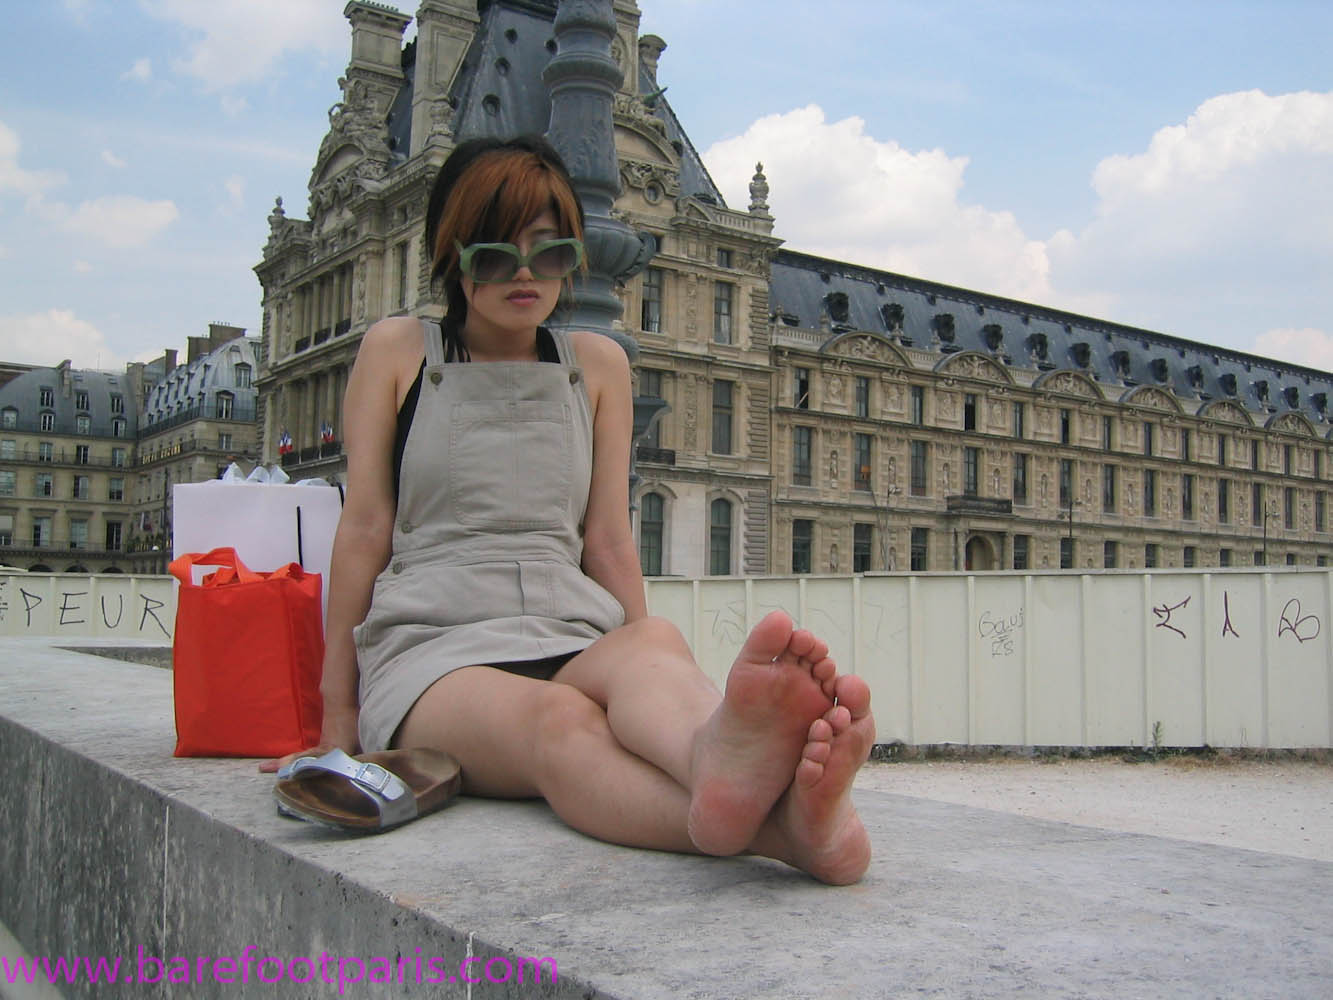 Paris barefoot girls-1.jpg